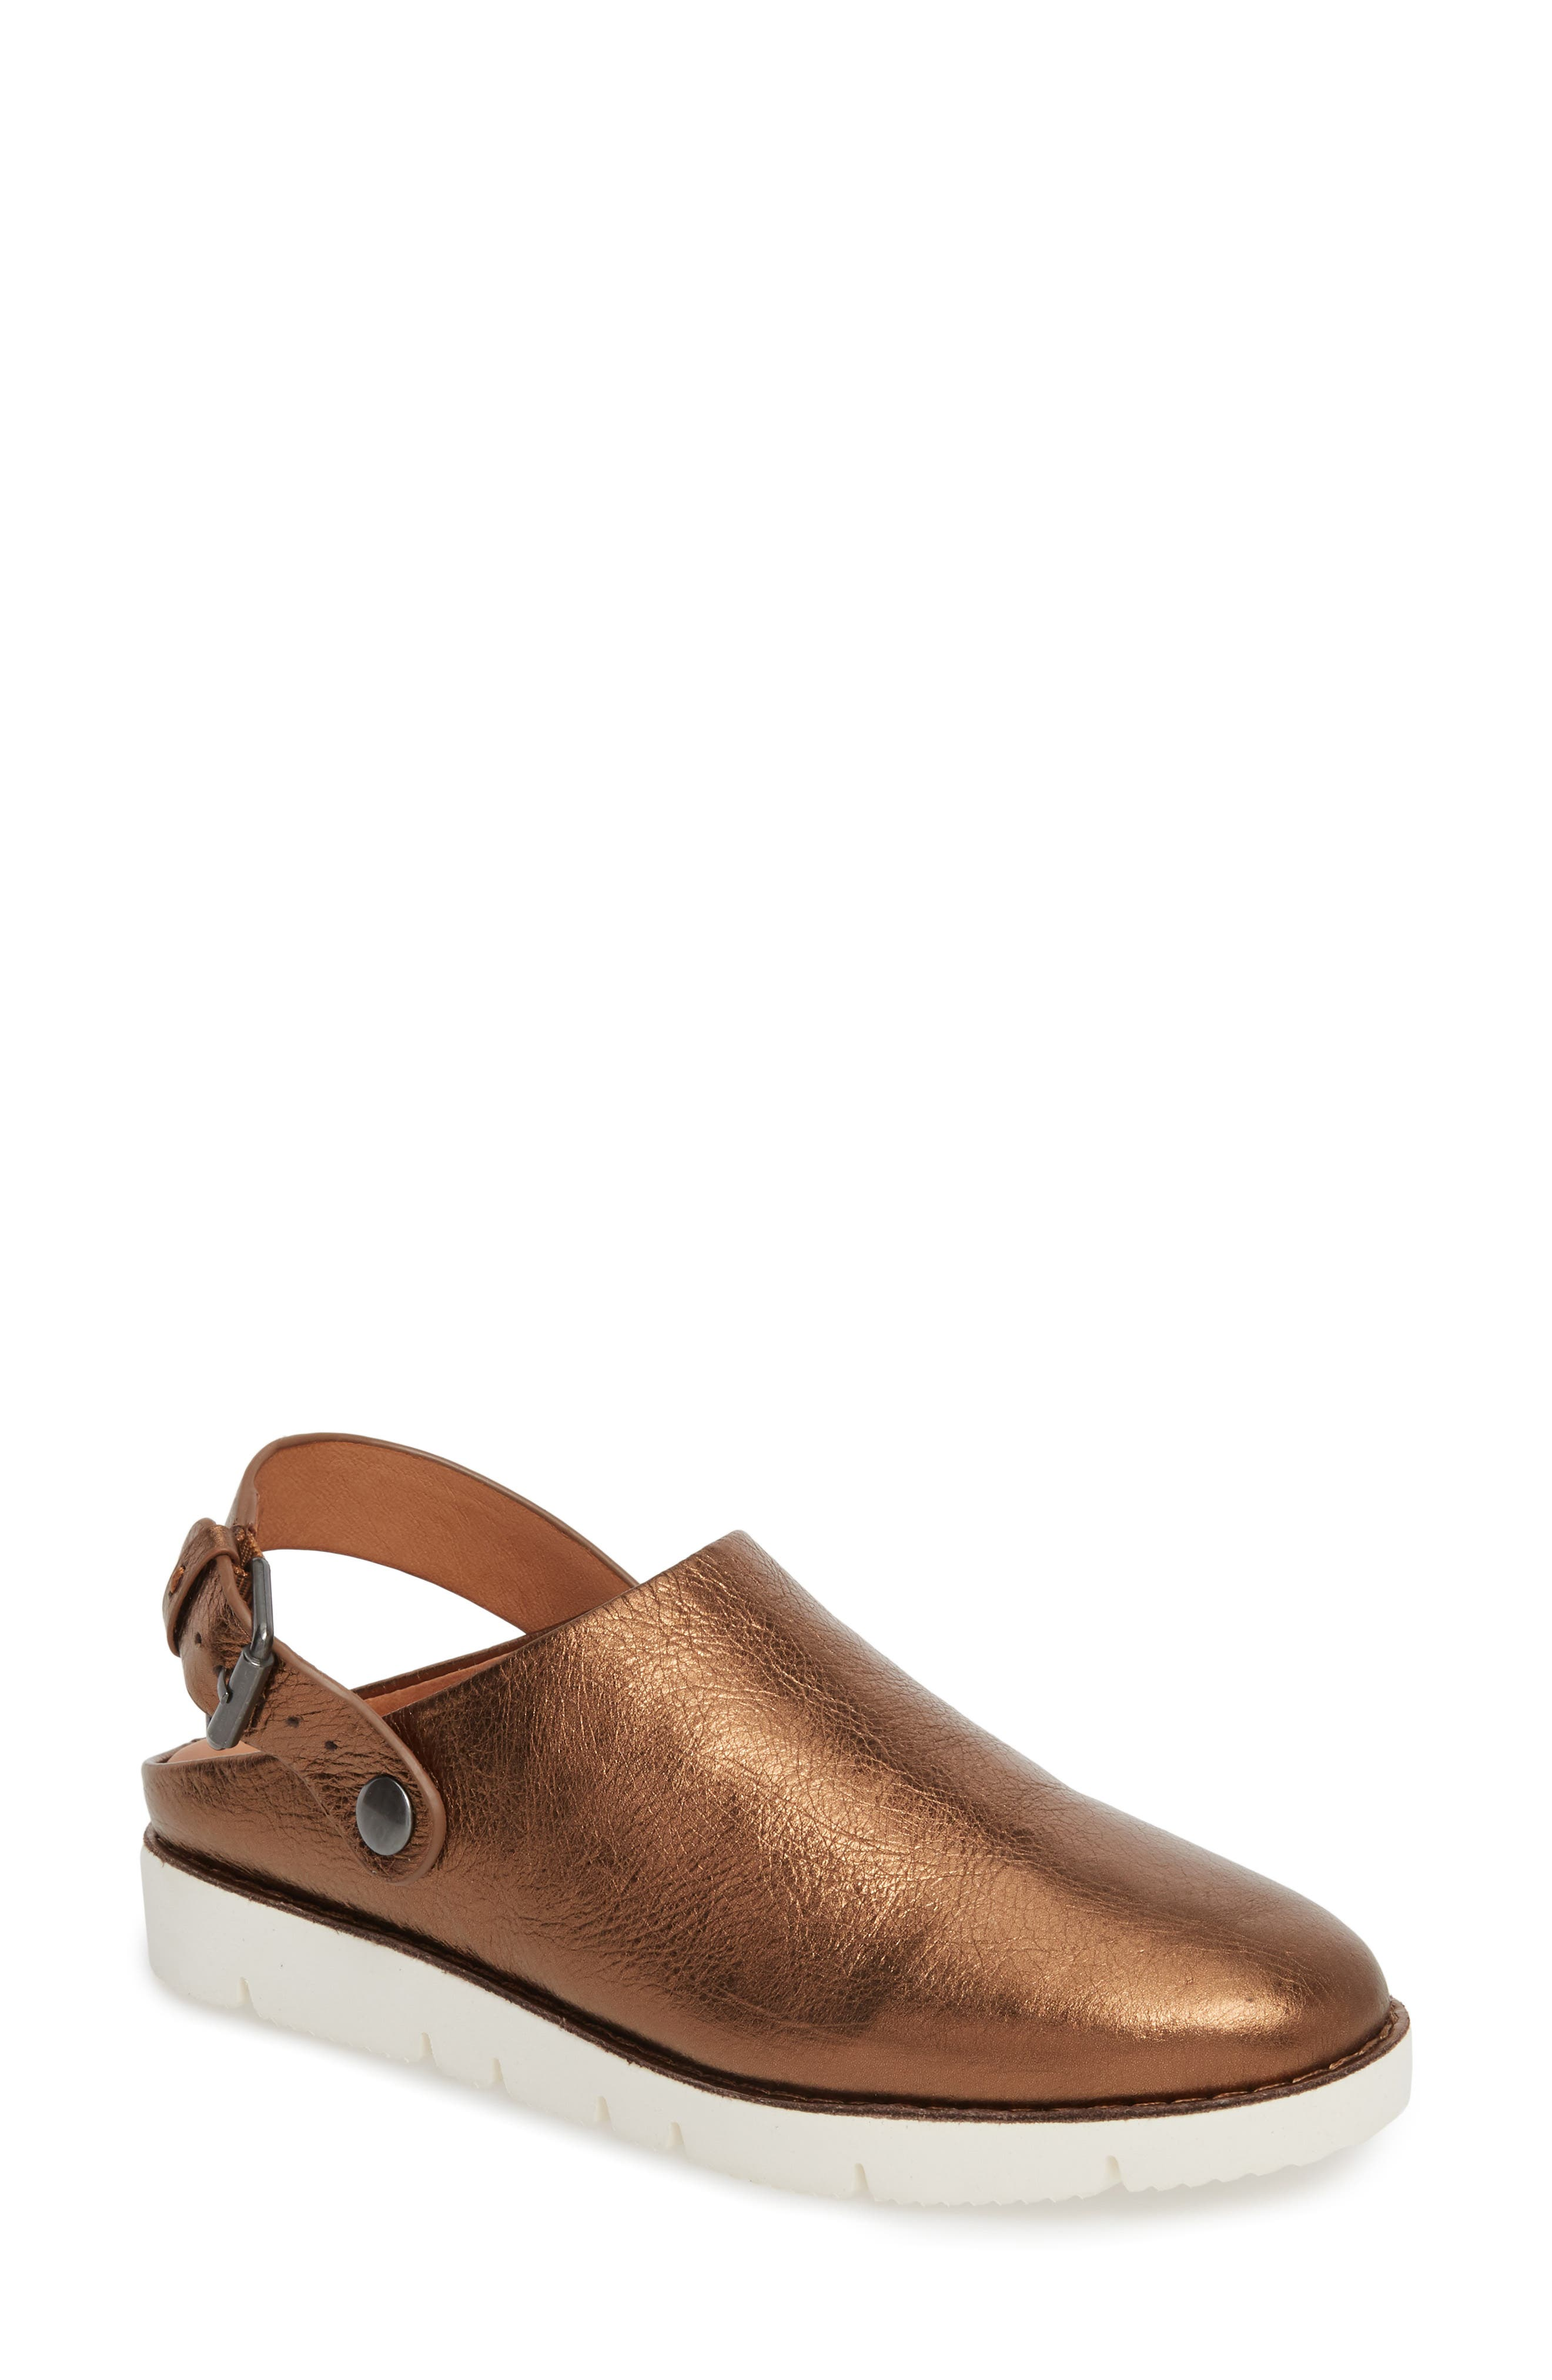 ESTHER CONVERTIBLE WEDGE